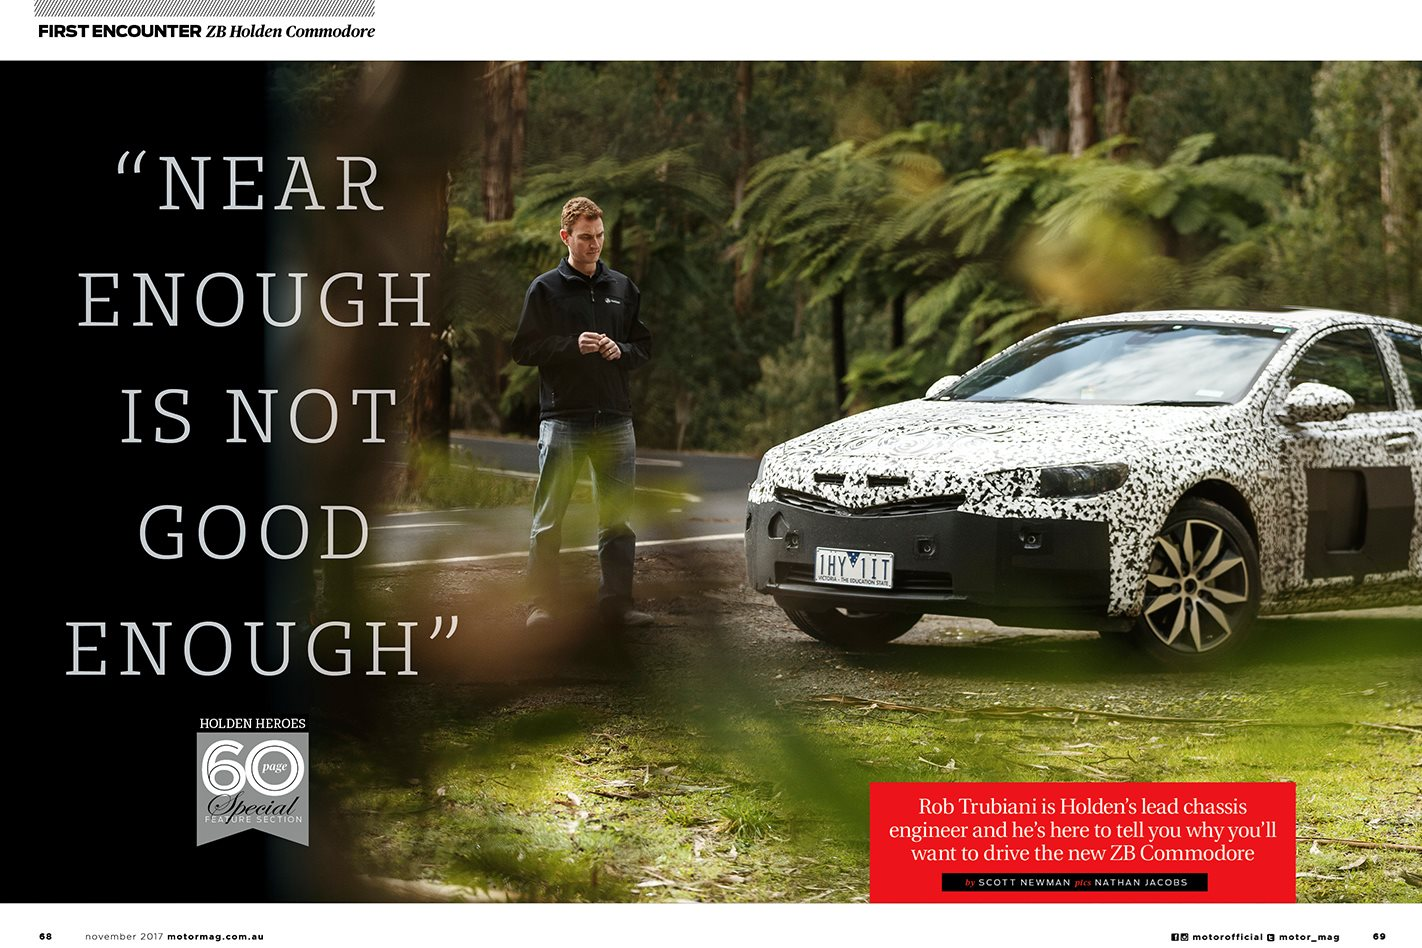 ZB-Holden-Commodore-prototype-review.jpg